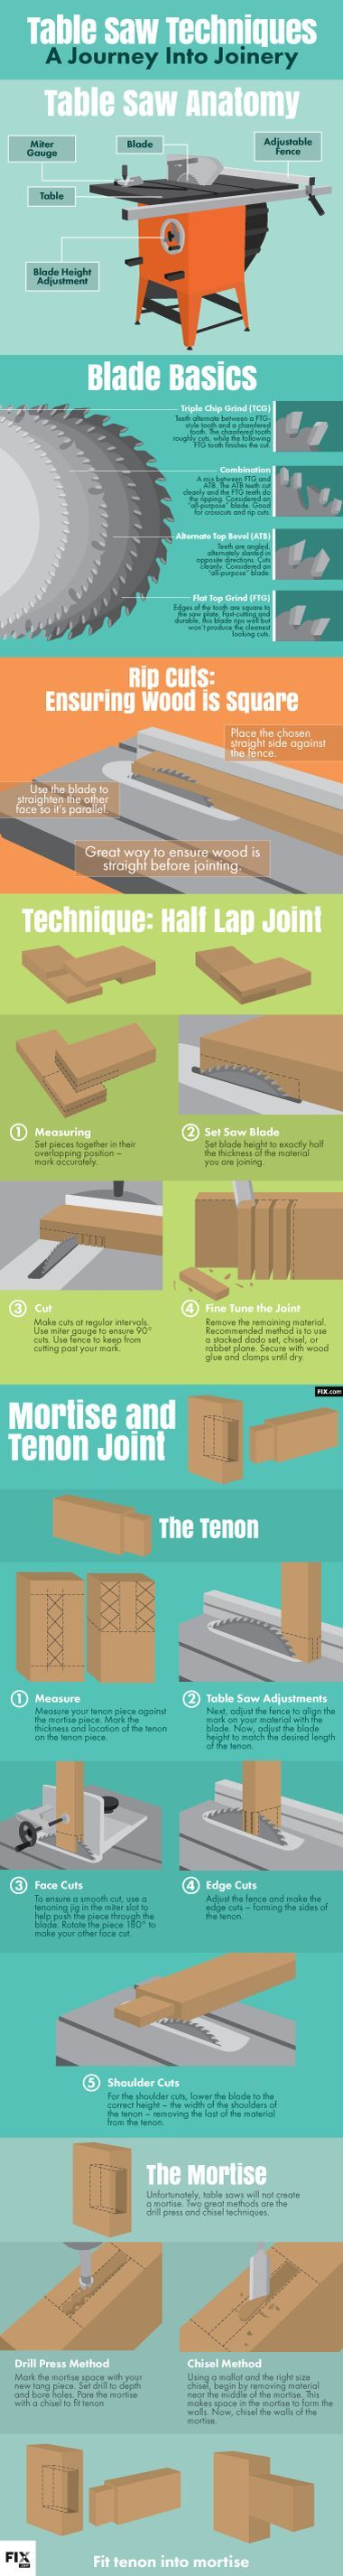 Table Saw Joinery Techniques http://www.fix.com/blog/table-saw-joinery-techniques/?utm_content=buffer5b5dc&utm_medium=social&utm_source=pinterest.com&utm_campaign=buffer #WWGOA